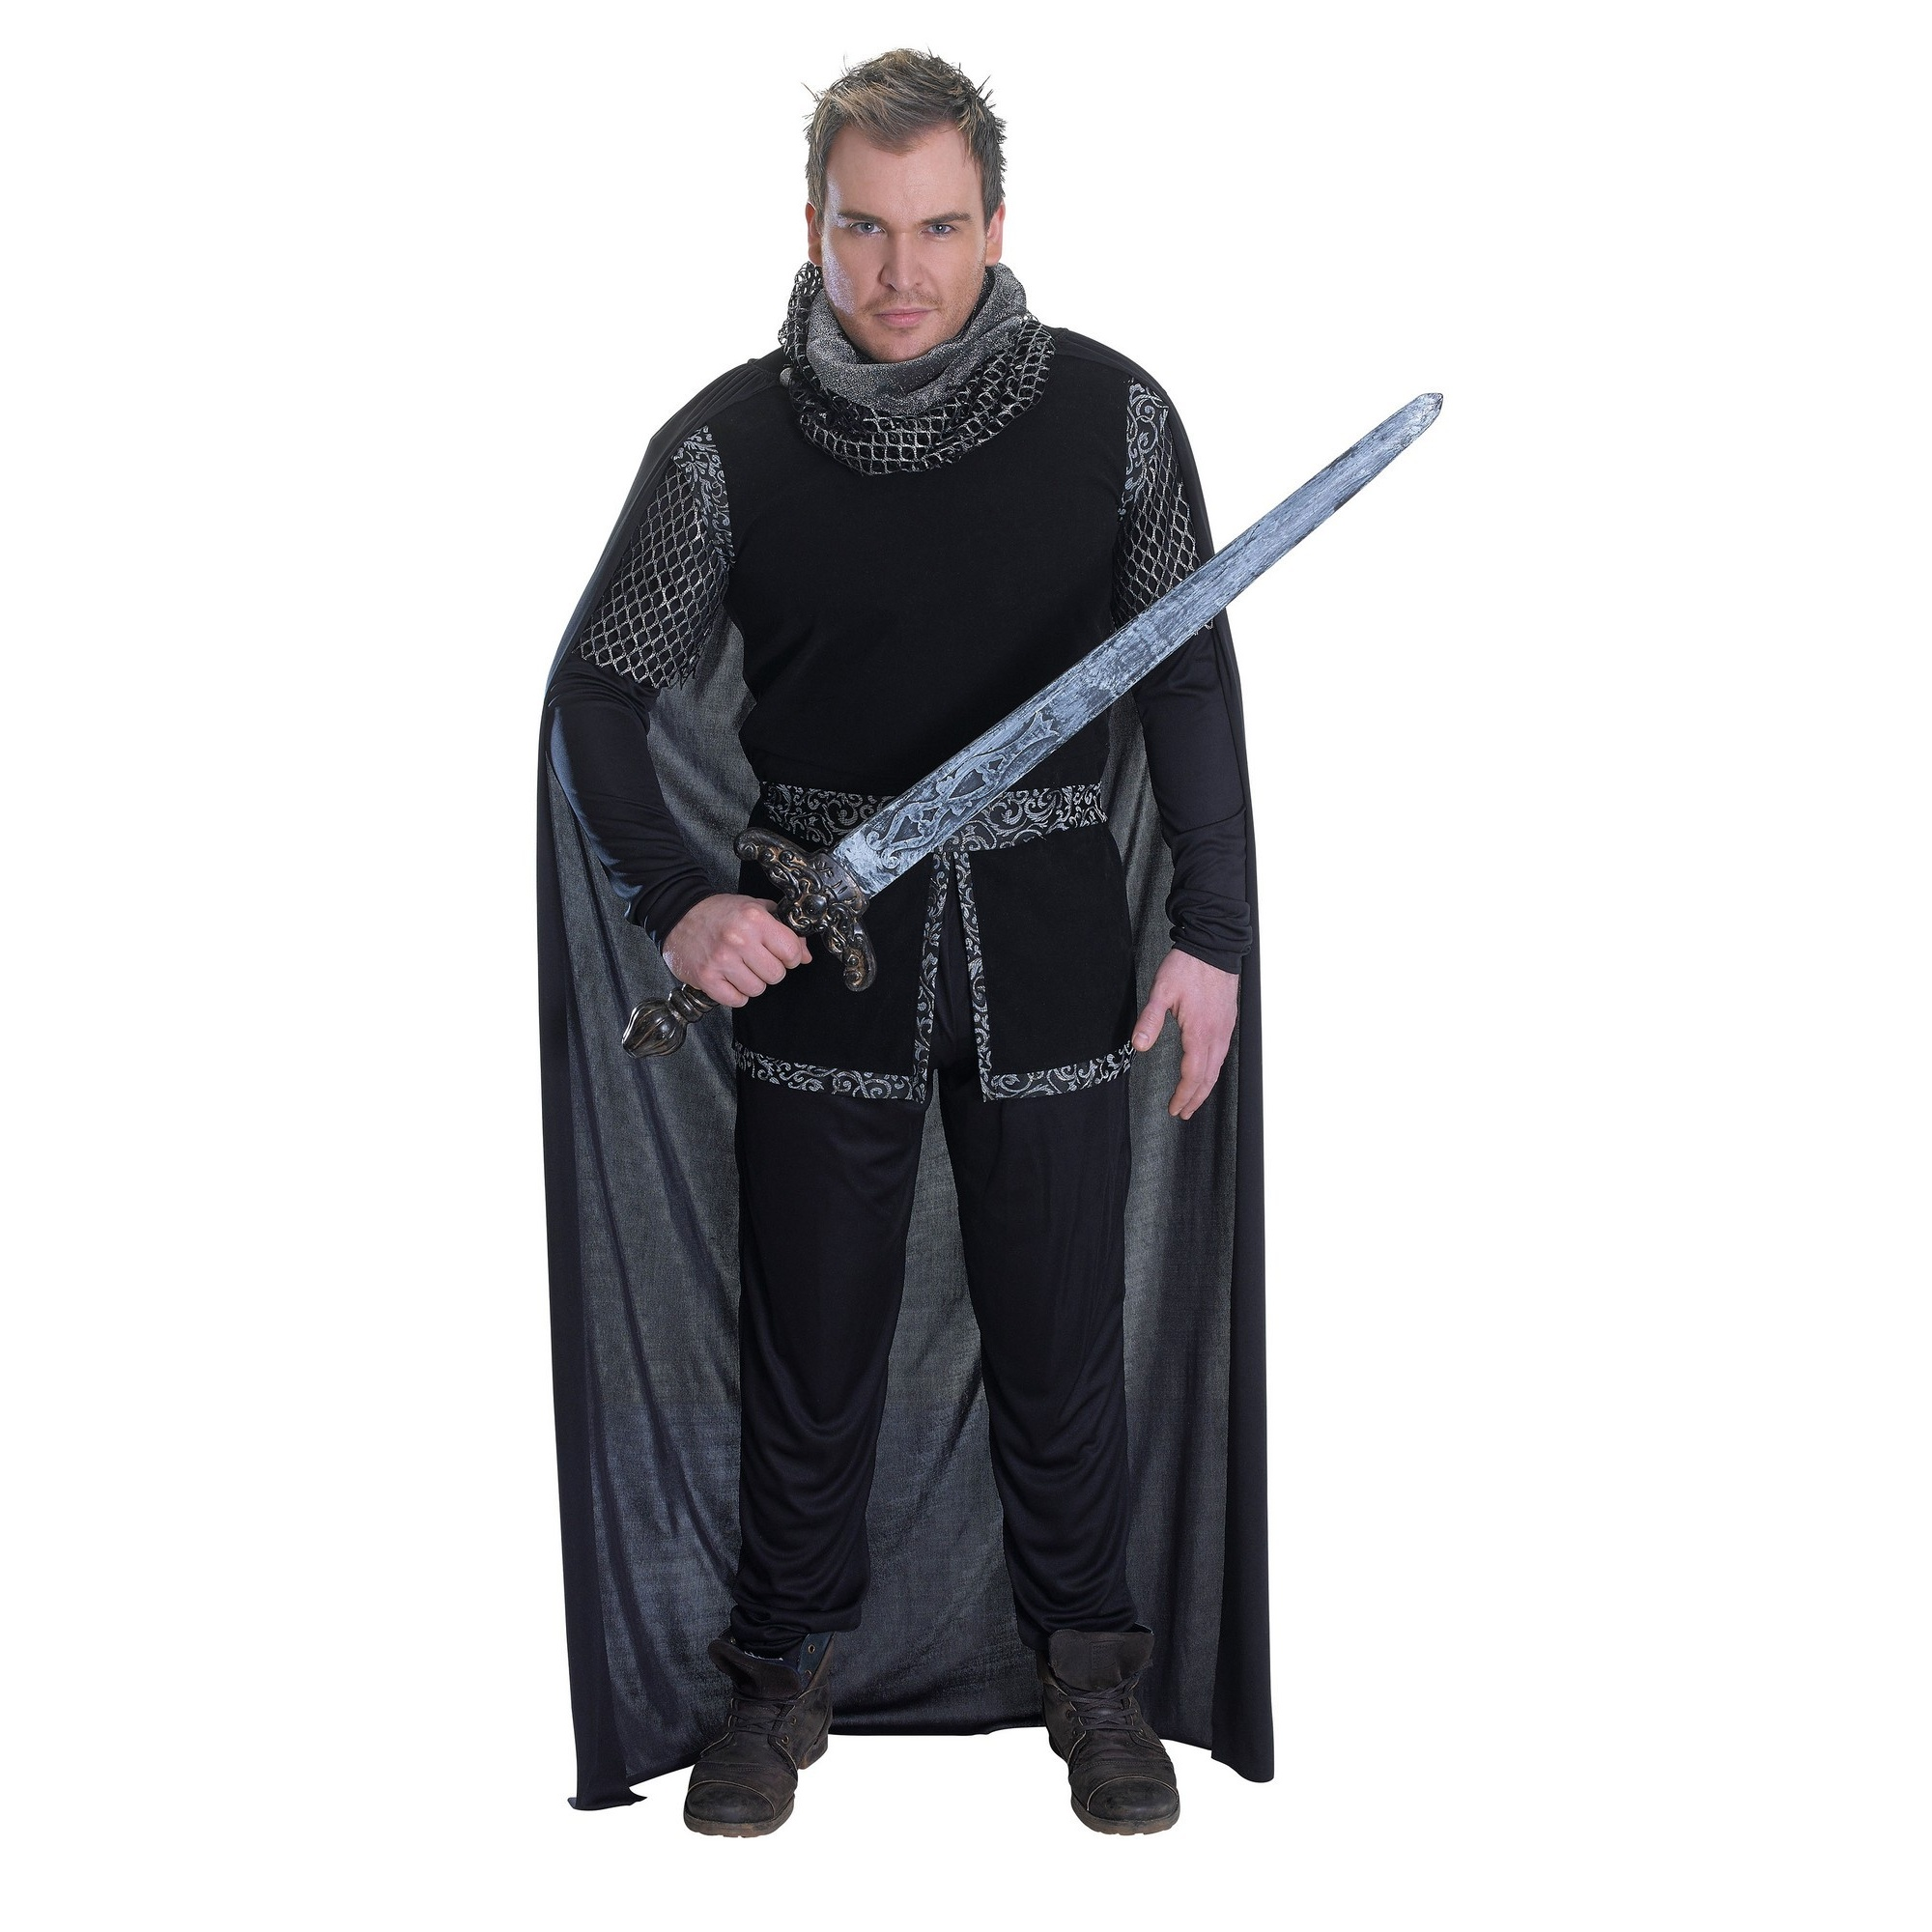 Bristol Novelty Unisex Adults Sheriff Of Nottingham Costume (One Size) (Black)